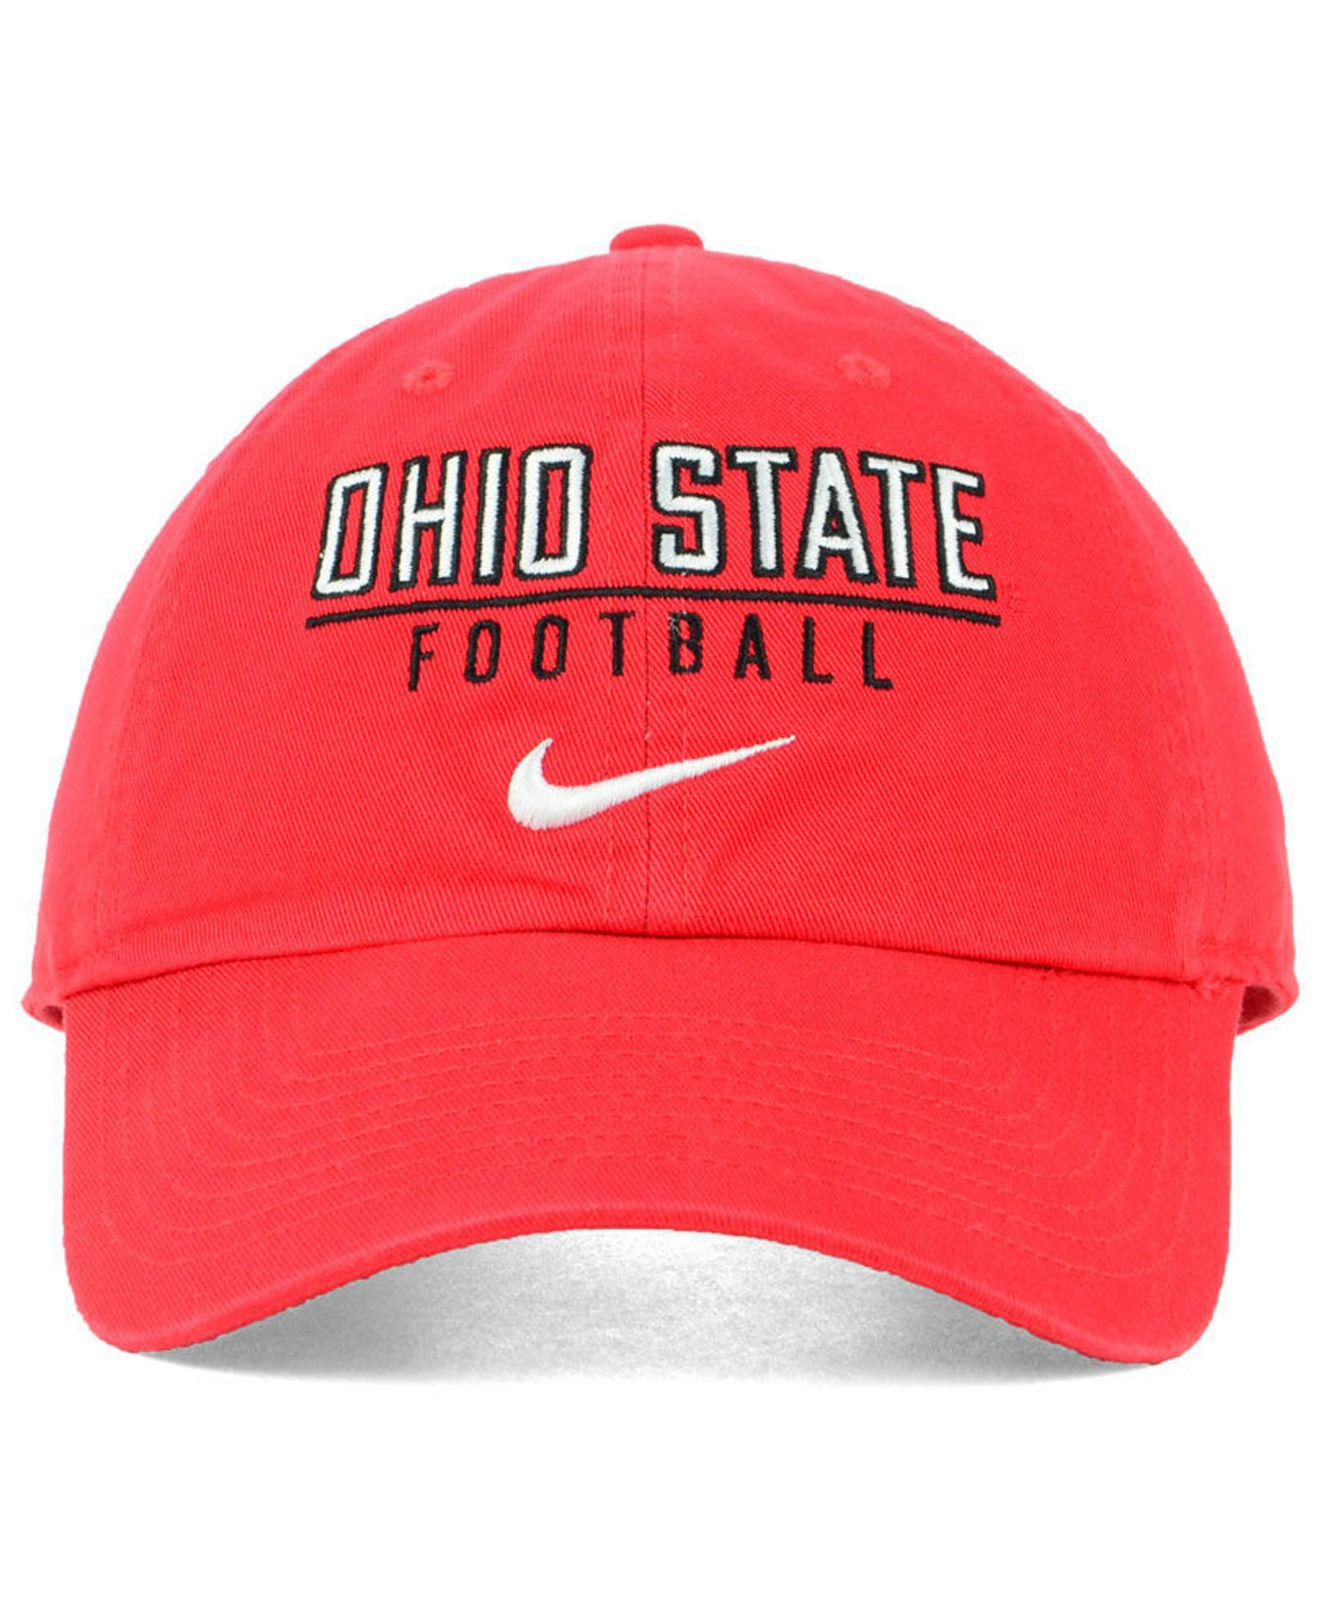 new styles dc847 0bef1 Lyst - Nike Ohio State Buckeyes Campus Sport Adjustable Cap in Red for Men